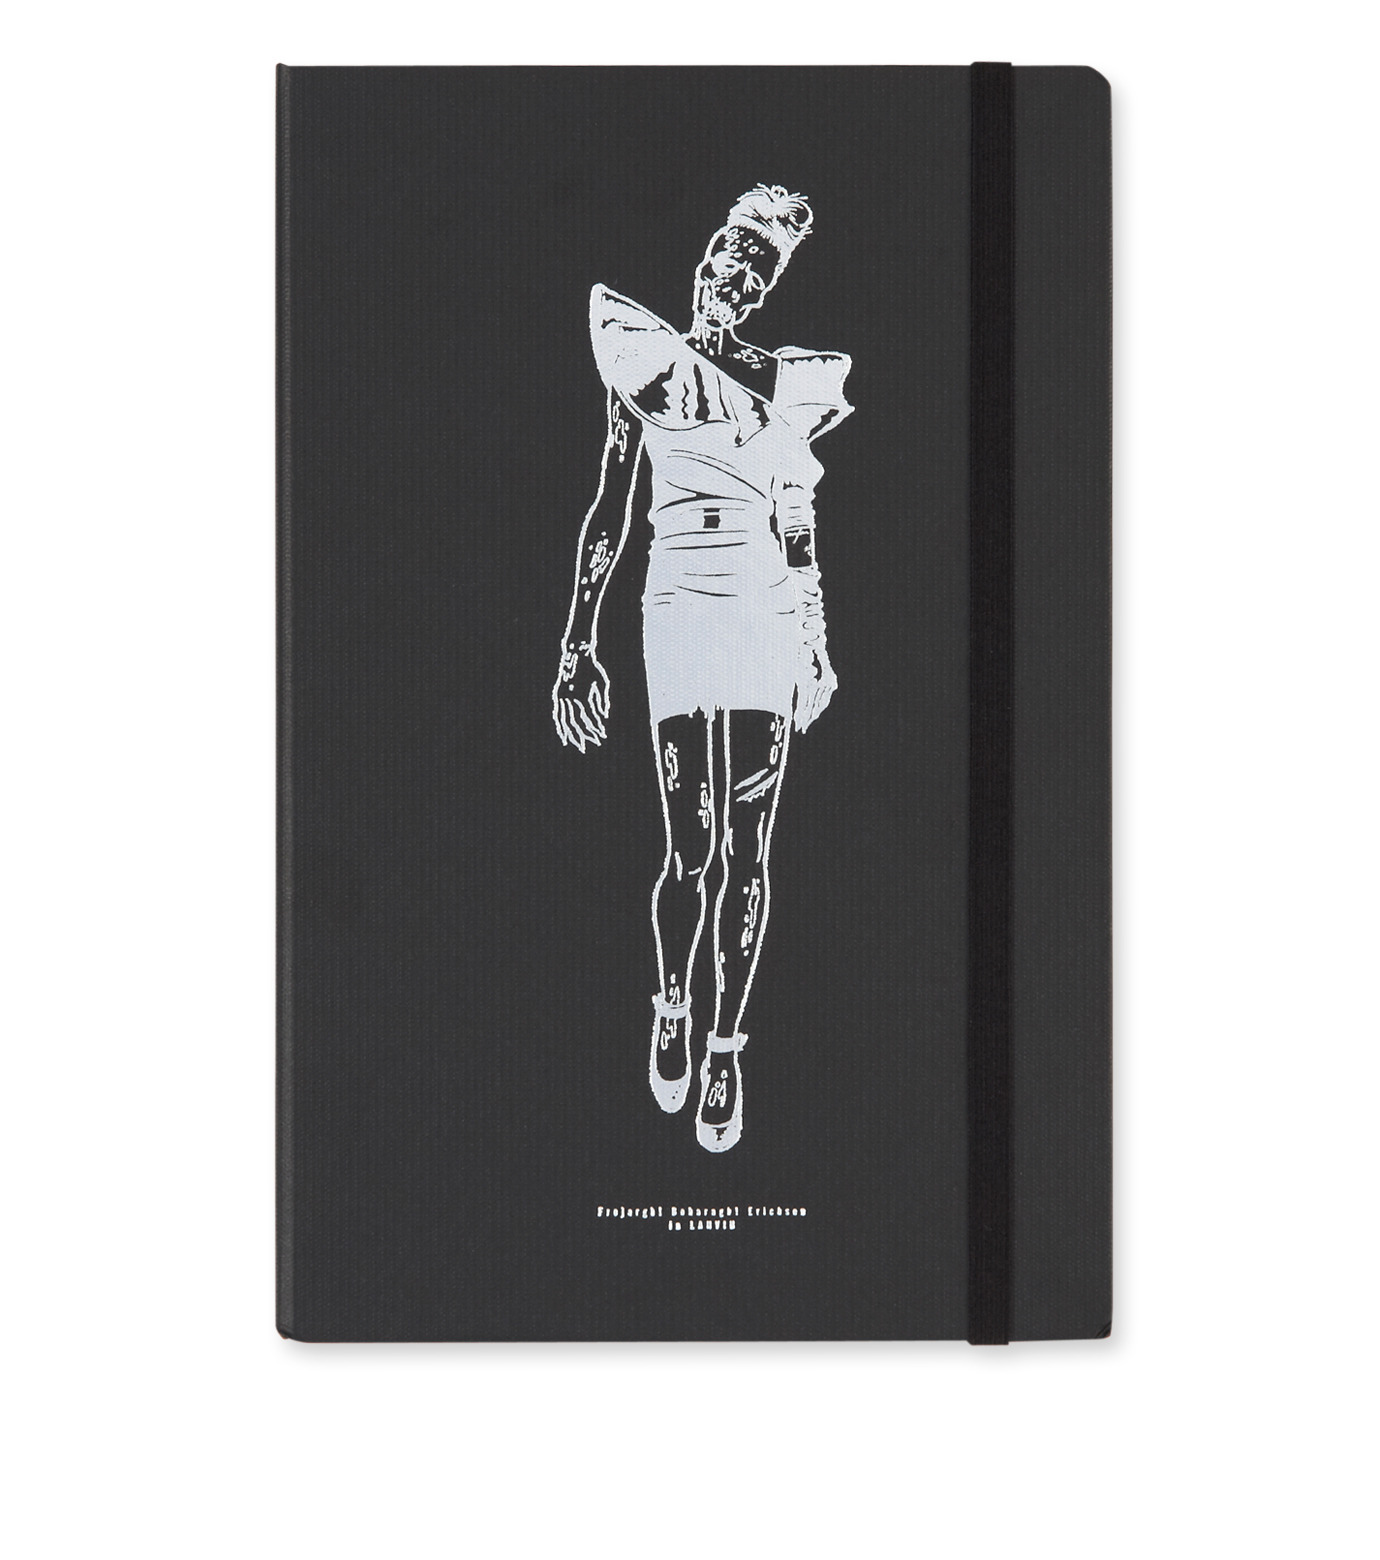 Fashematical(ファシェマティカル)のNote book-NONE(OTHER-GOODS/OTHER-GOODS)-Note-Lanvin 拡大詳細画像1